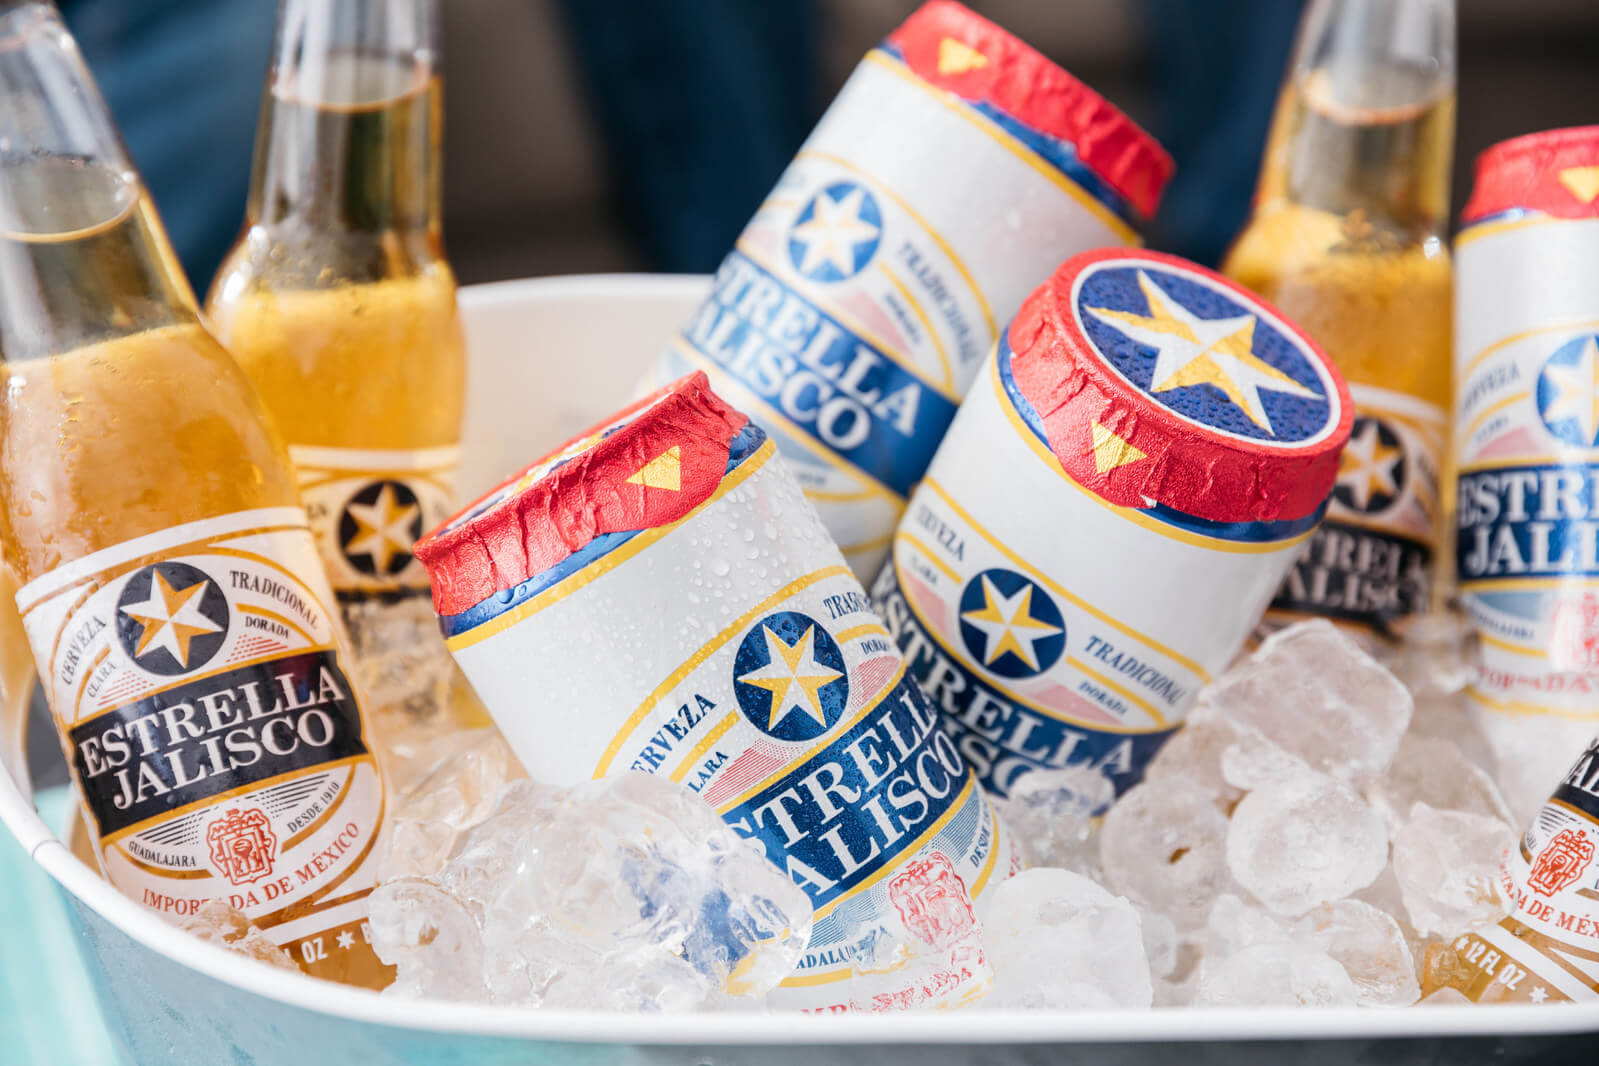 Estrella Jalisco puts foil top seals on canned beer - What's Shakin' week of July 24